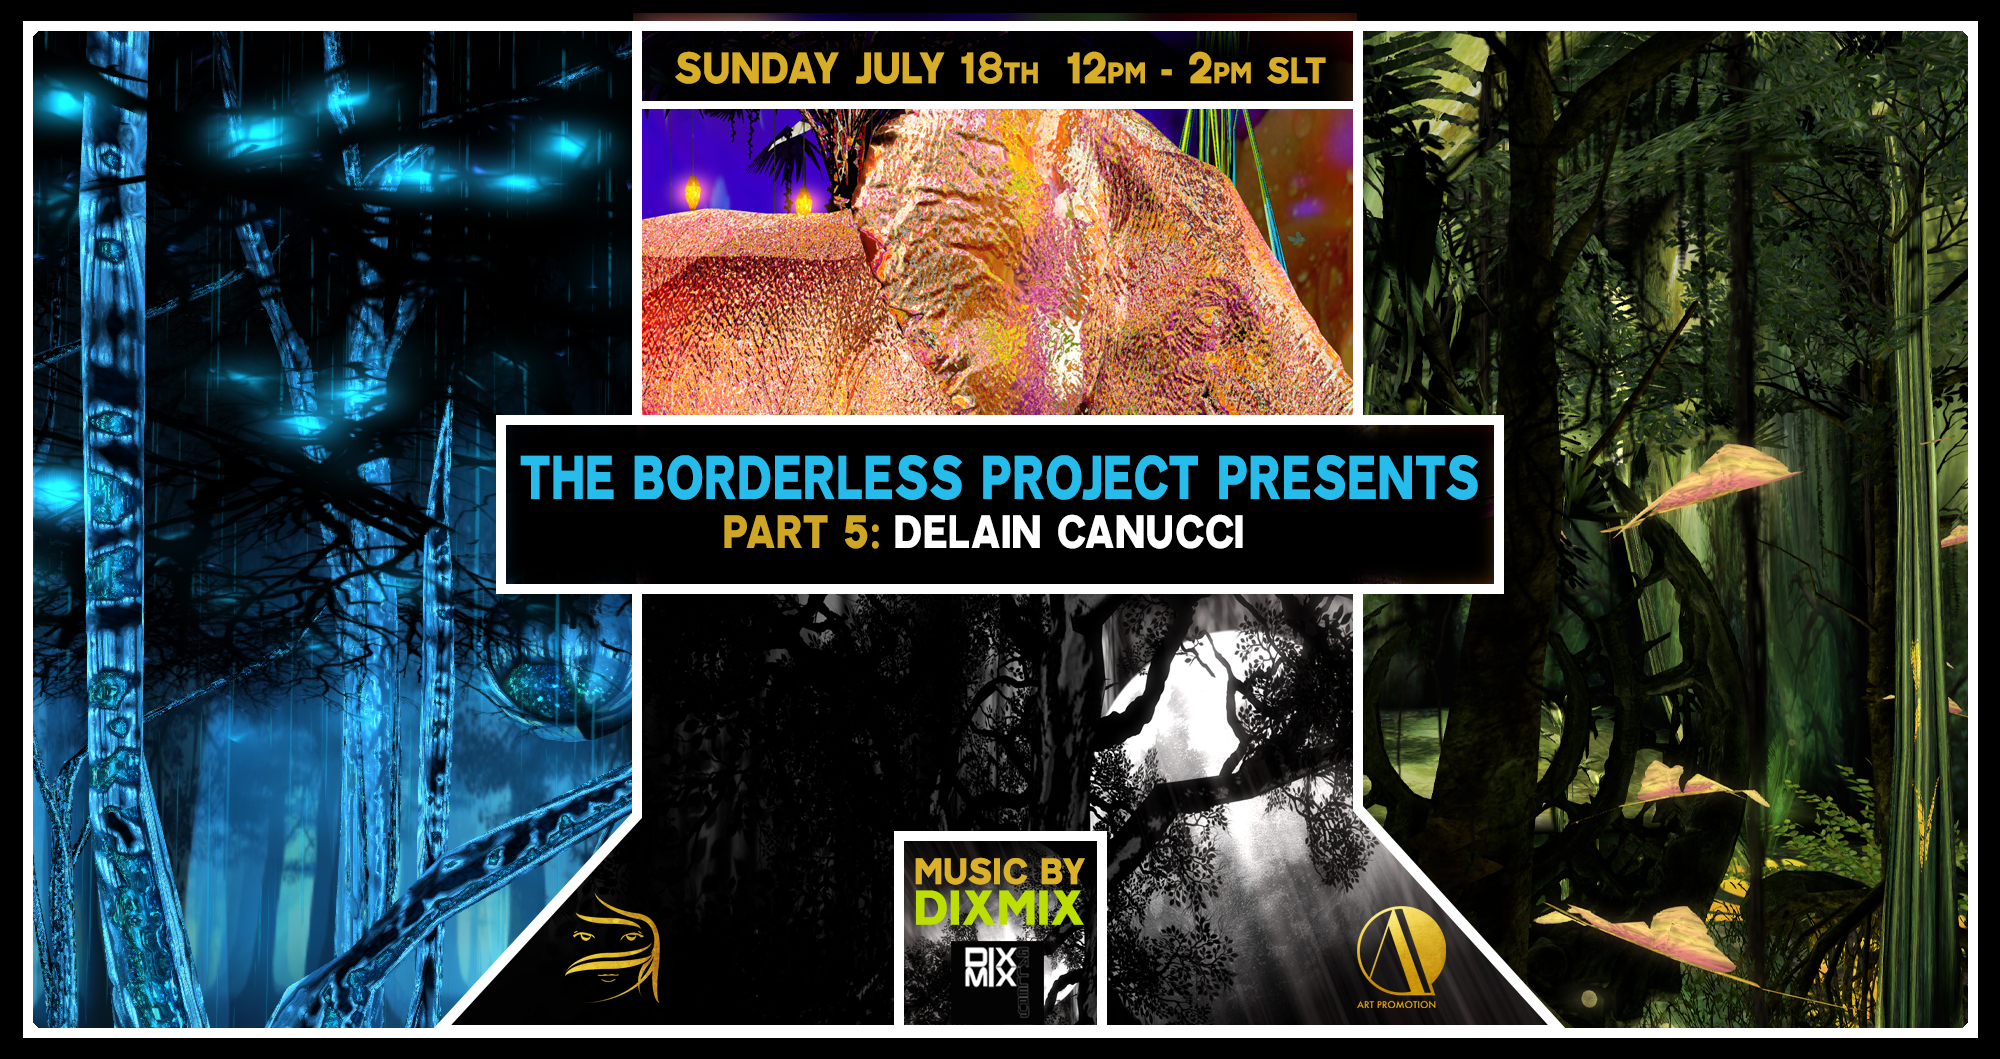 The Borderless Project Part 5 — by Delain Canucci with musical set by Dixmix